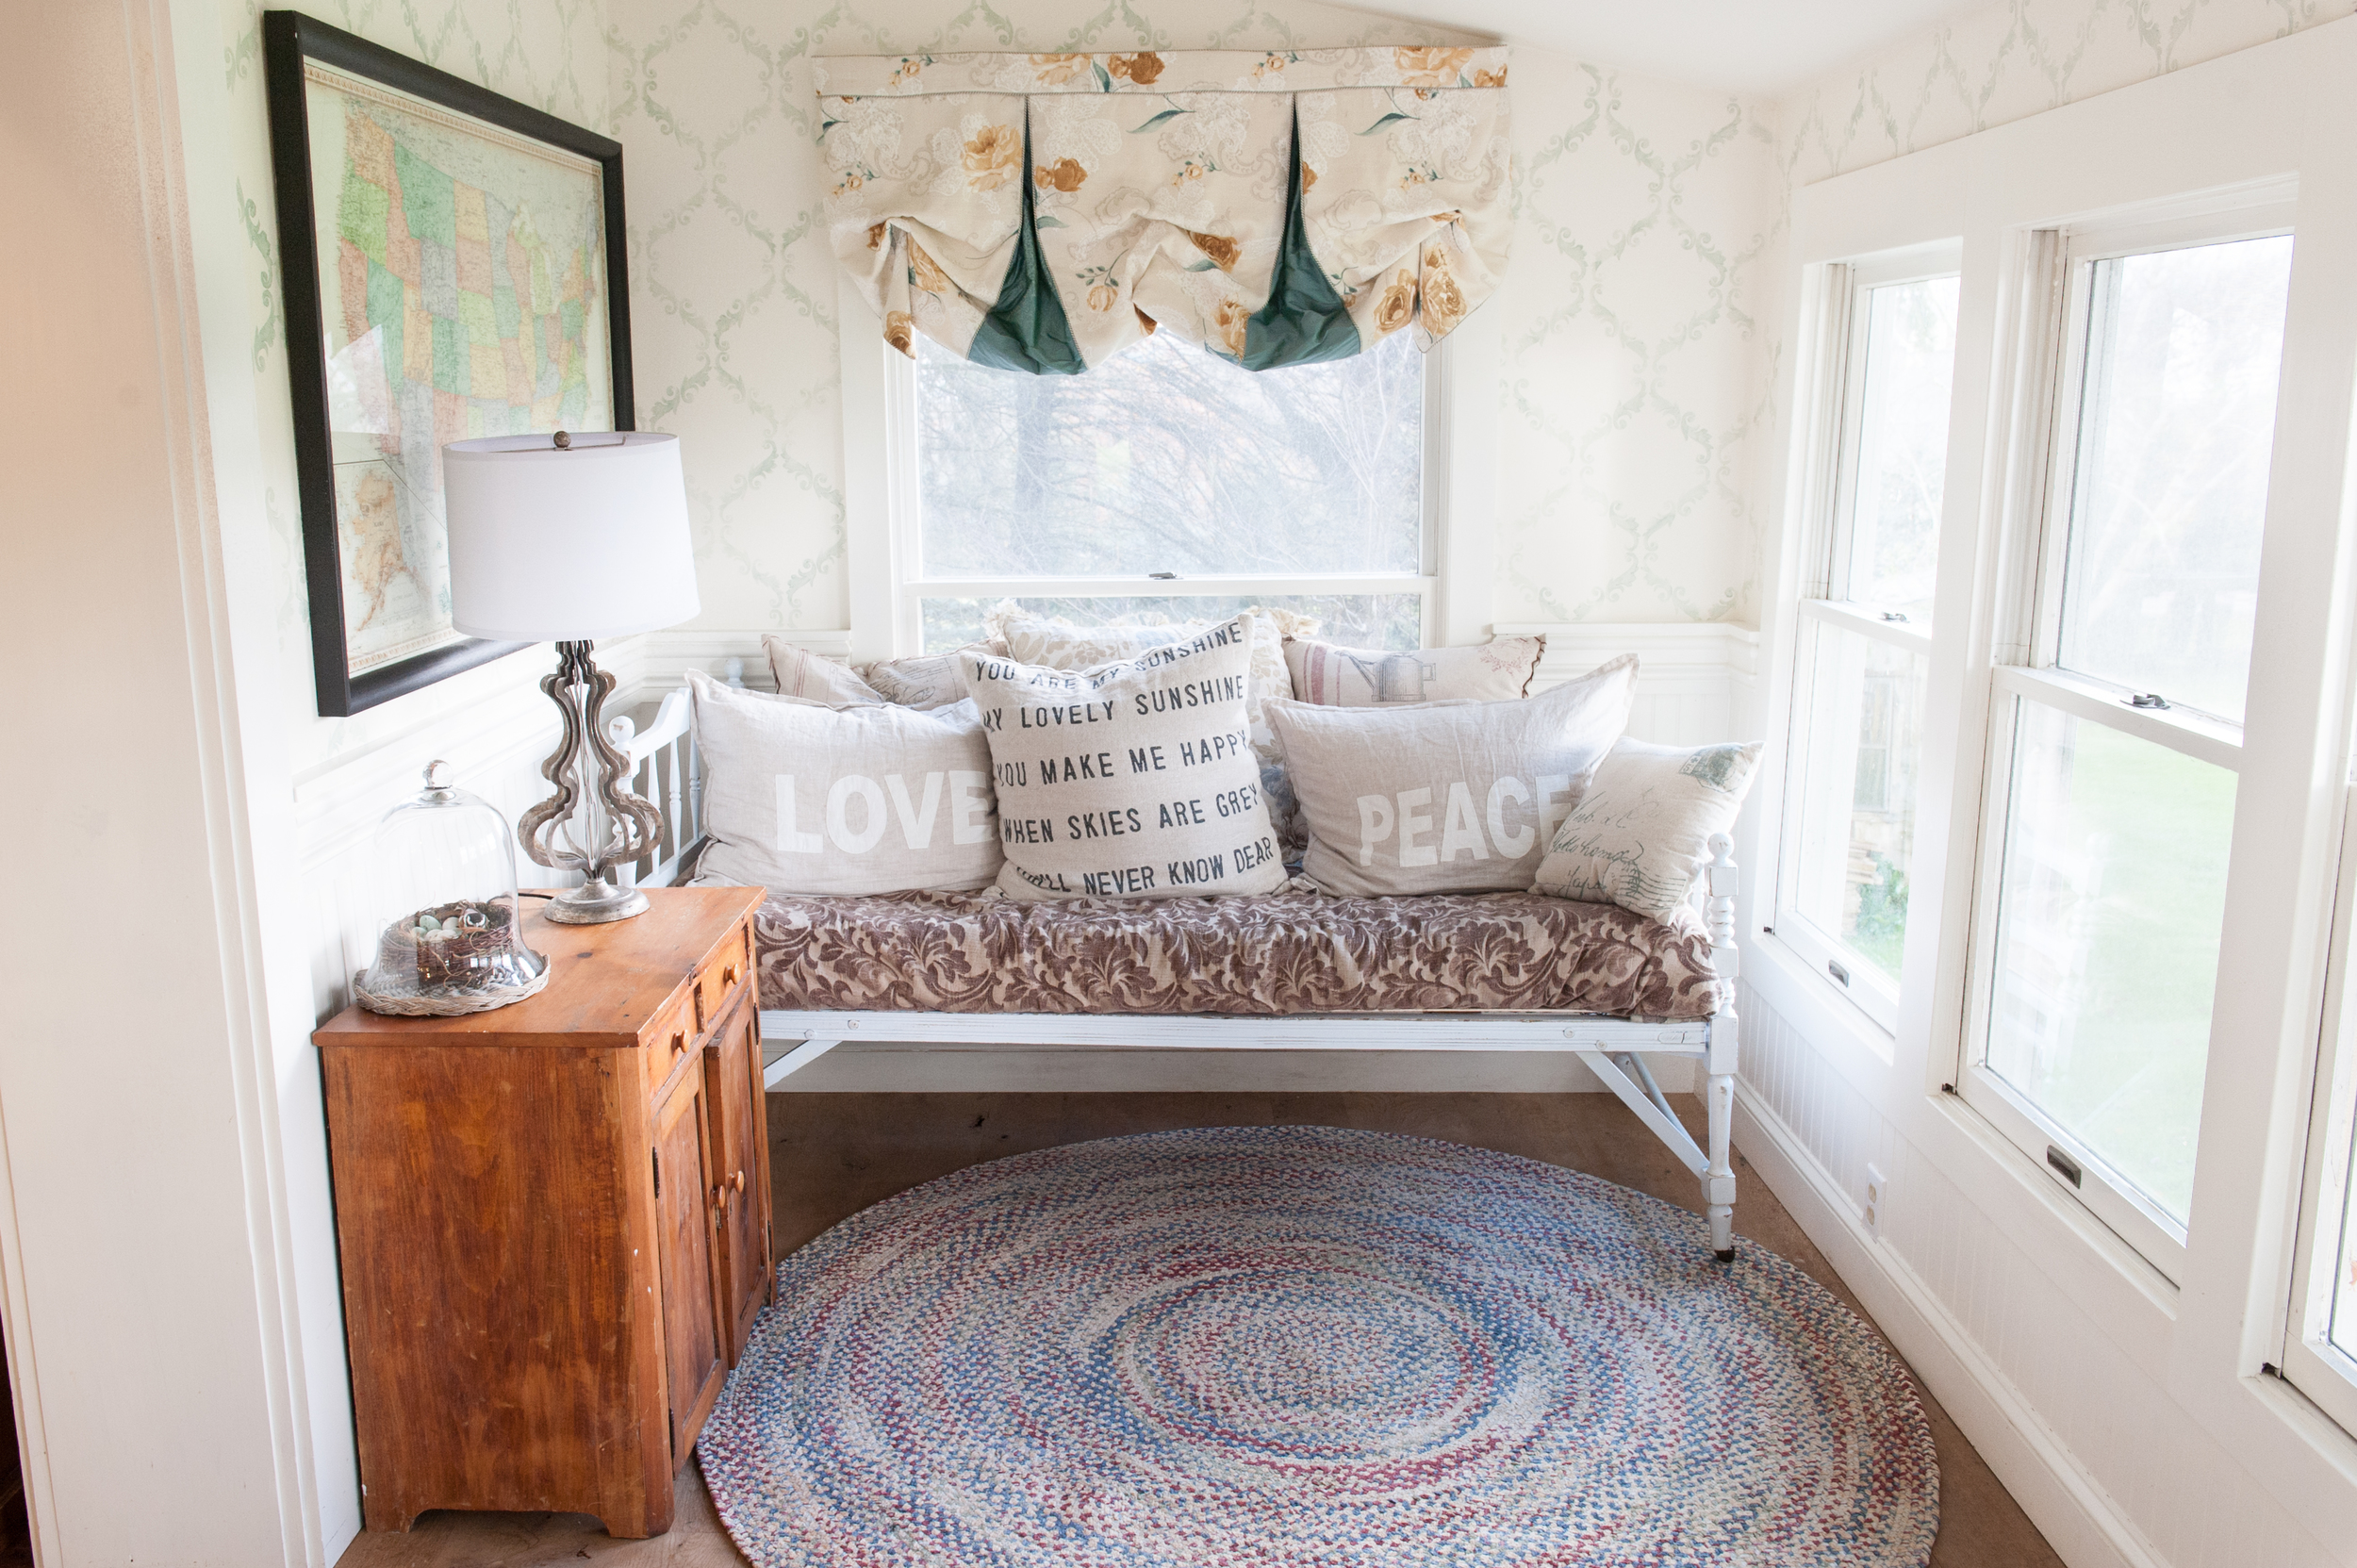 spare_room_with_light_daybed_and_pillows